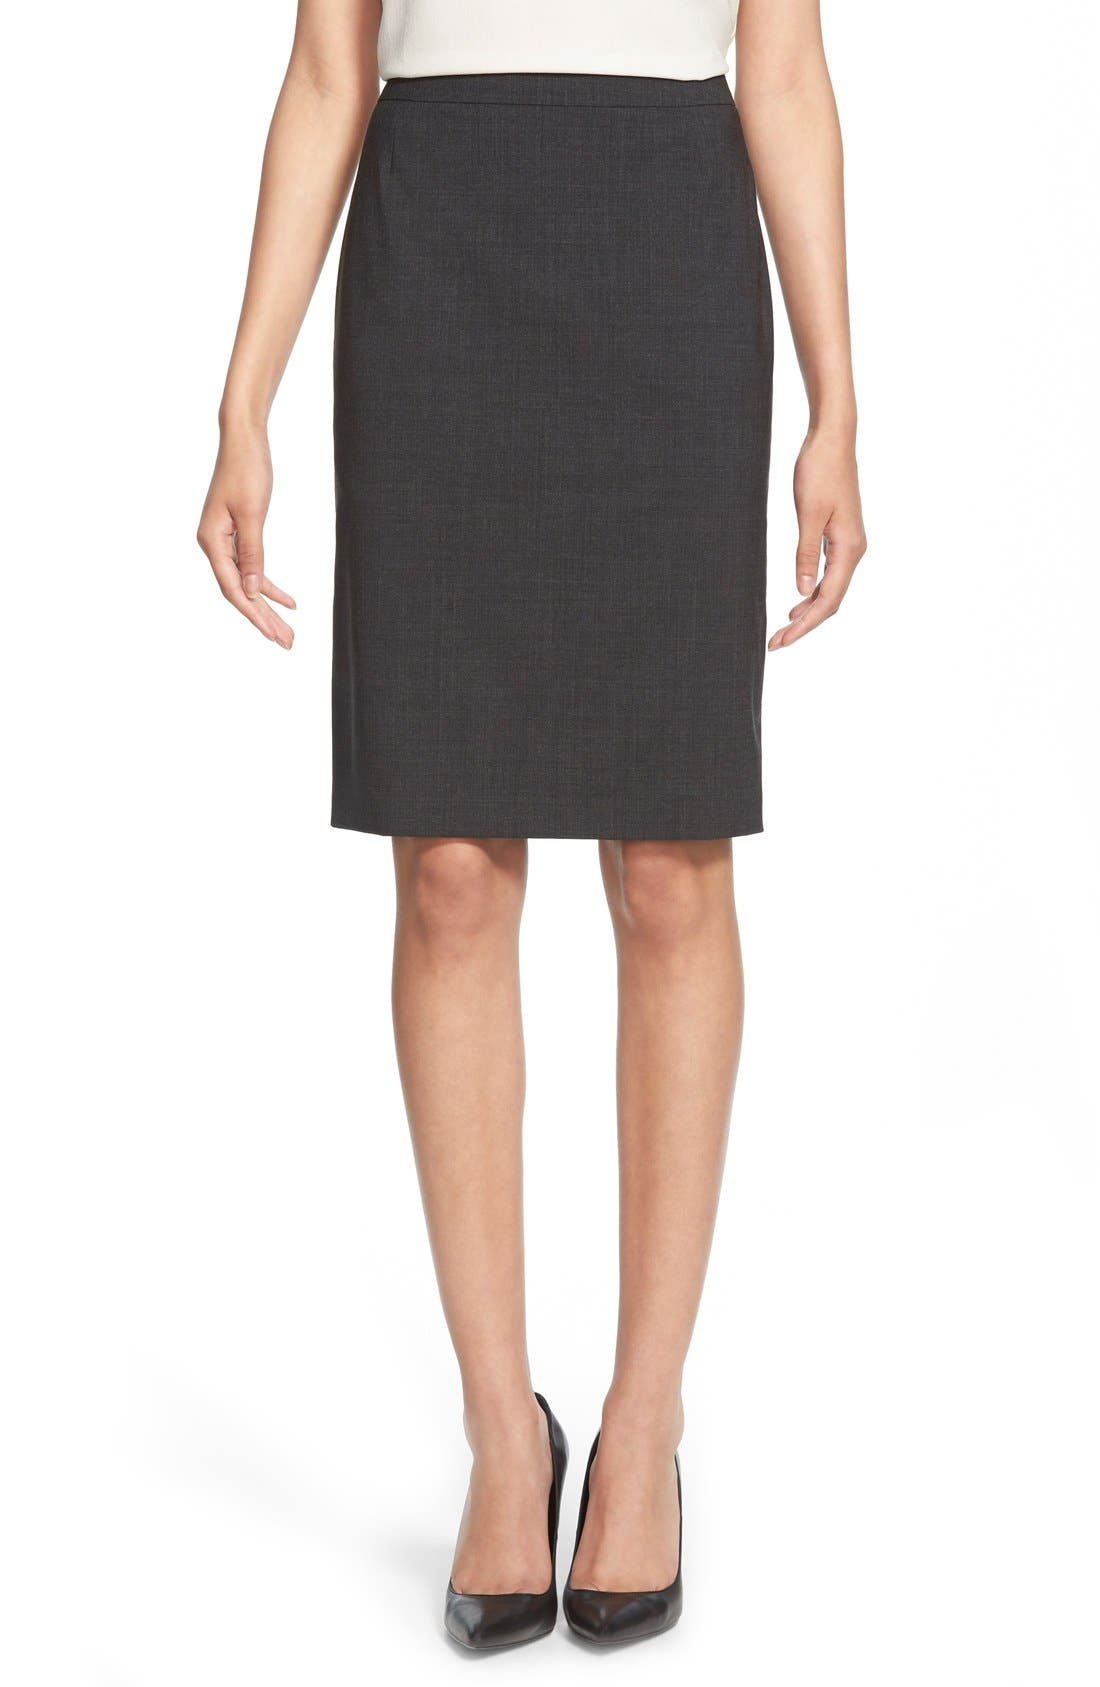 Vilea Tropical Stretch Wool Pencil Skirt,                         Main,                         color, Charcoal